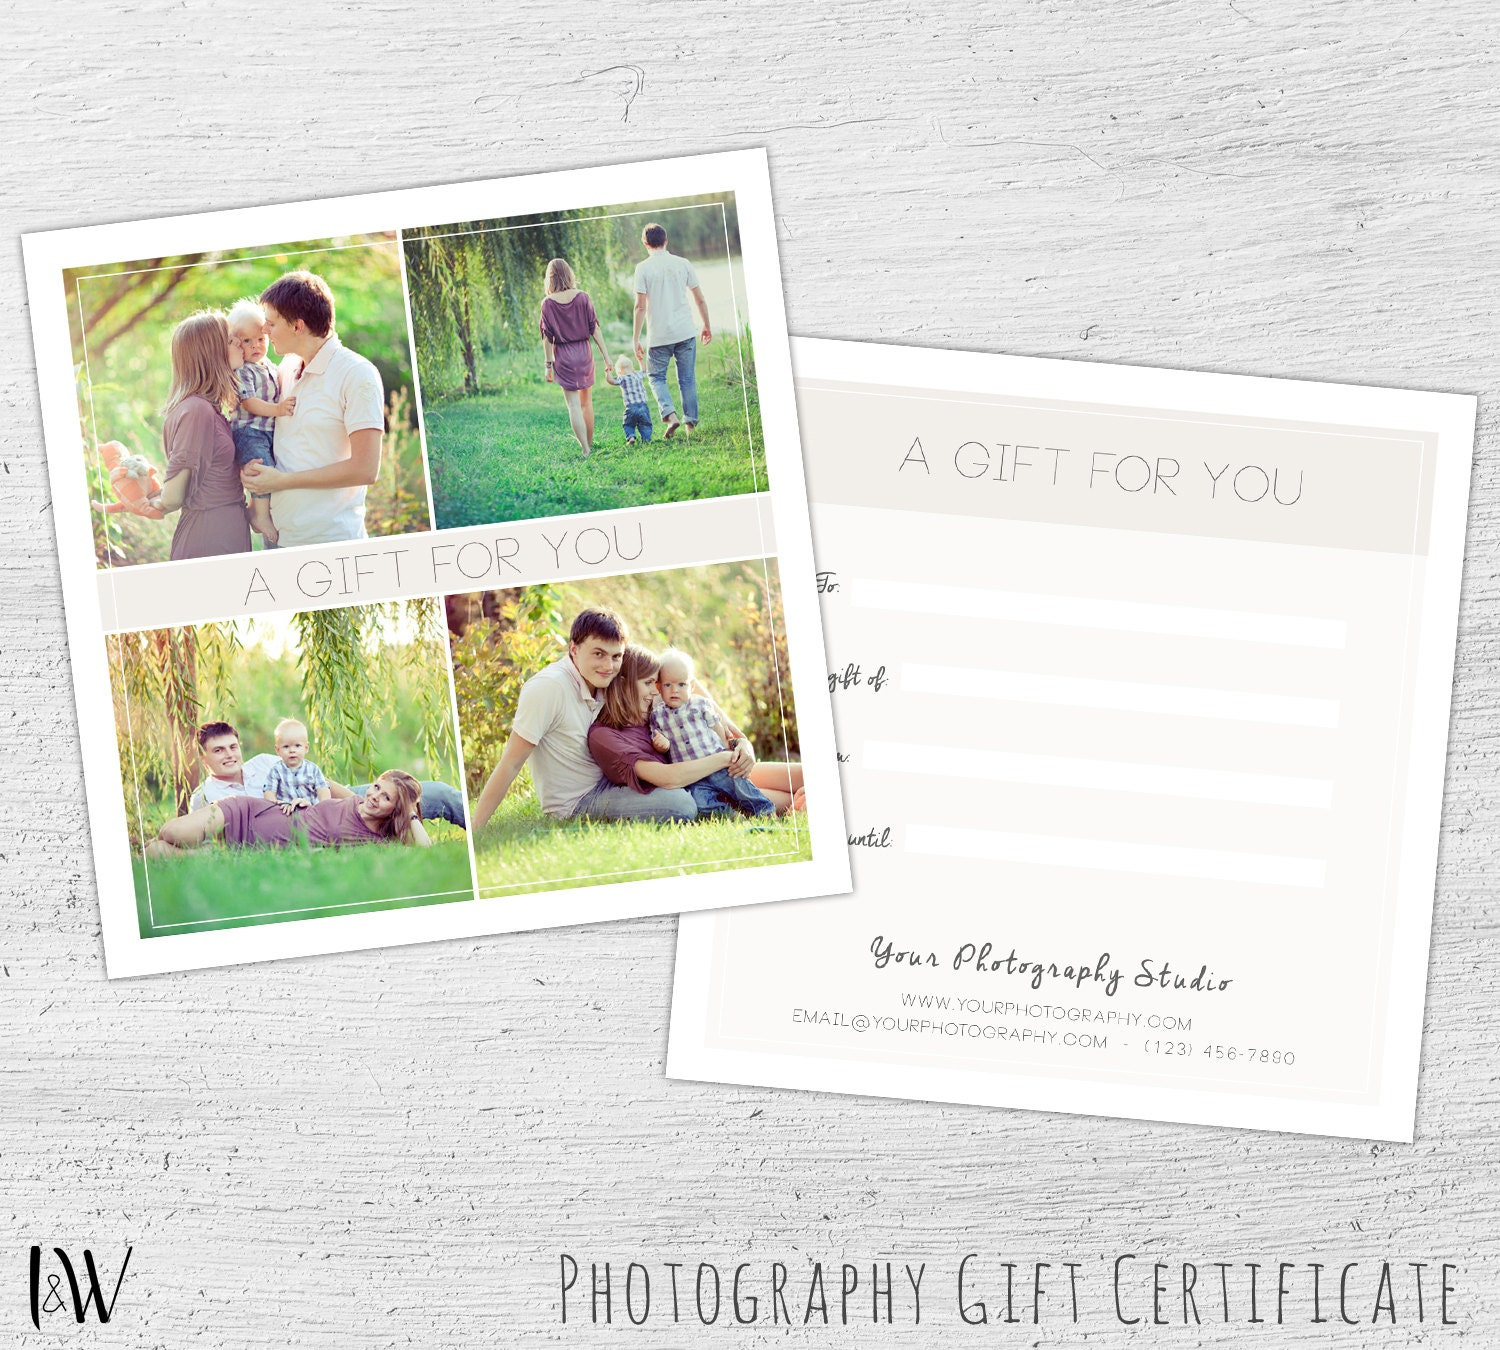 Gift card template easter photography gift certificate zoom negle Choice Image